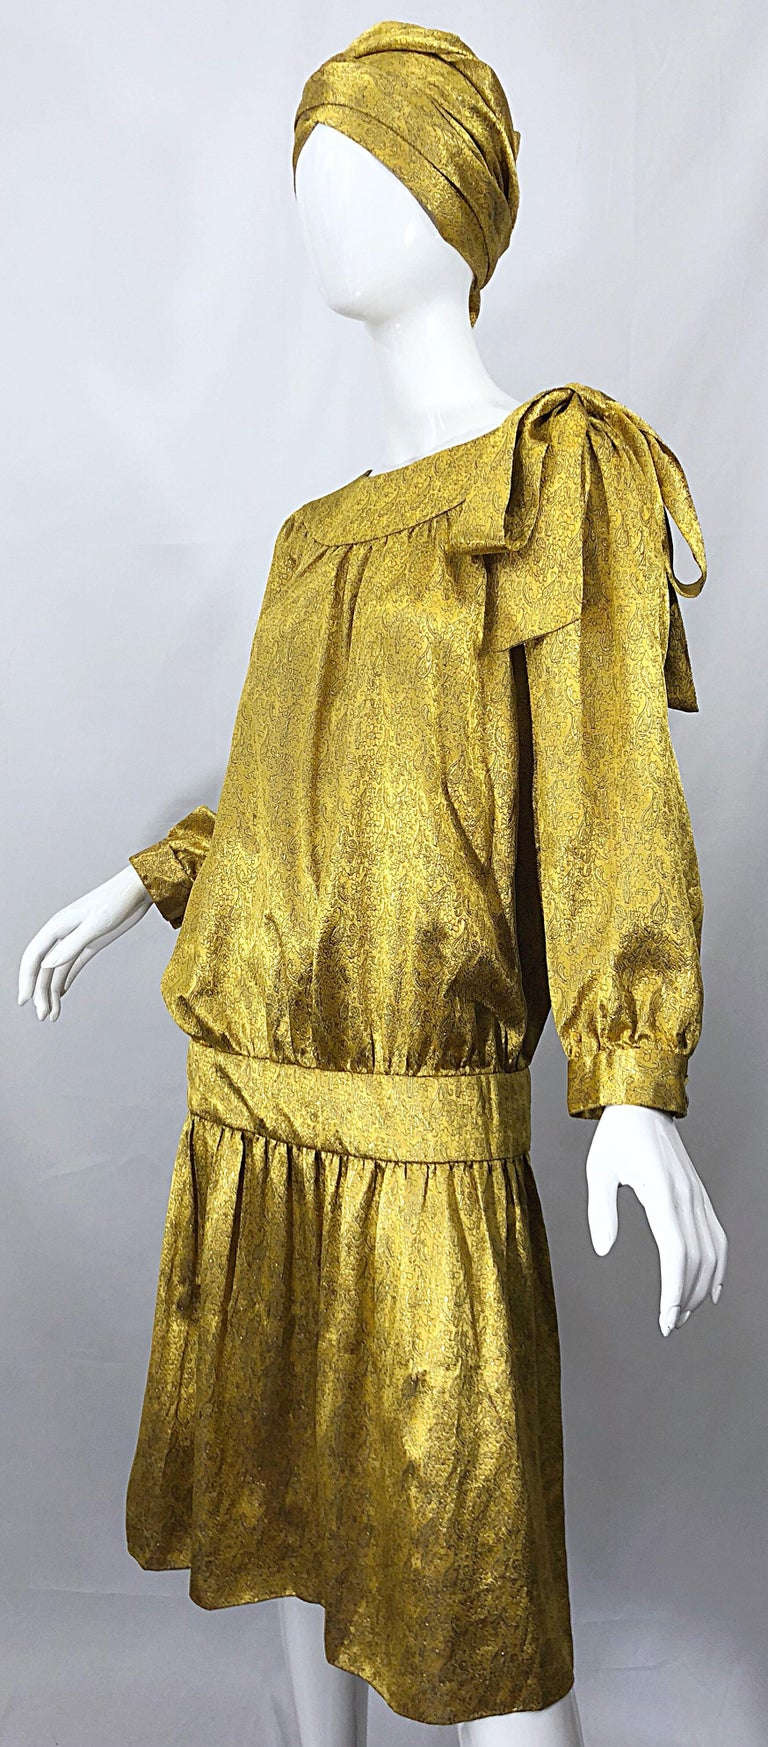 Vintage Brioni Yellow + Gold Silk 1920s Style Drop Waist Dress + Turban Sash For Sale 5